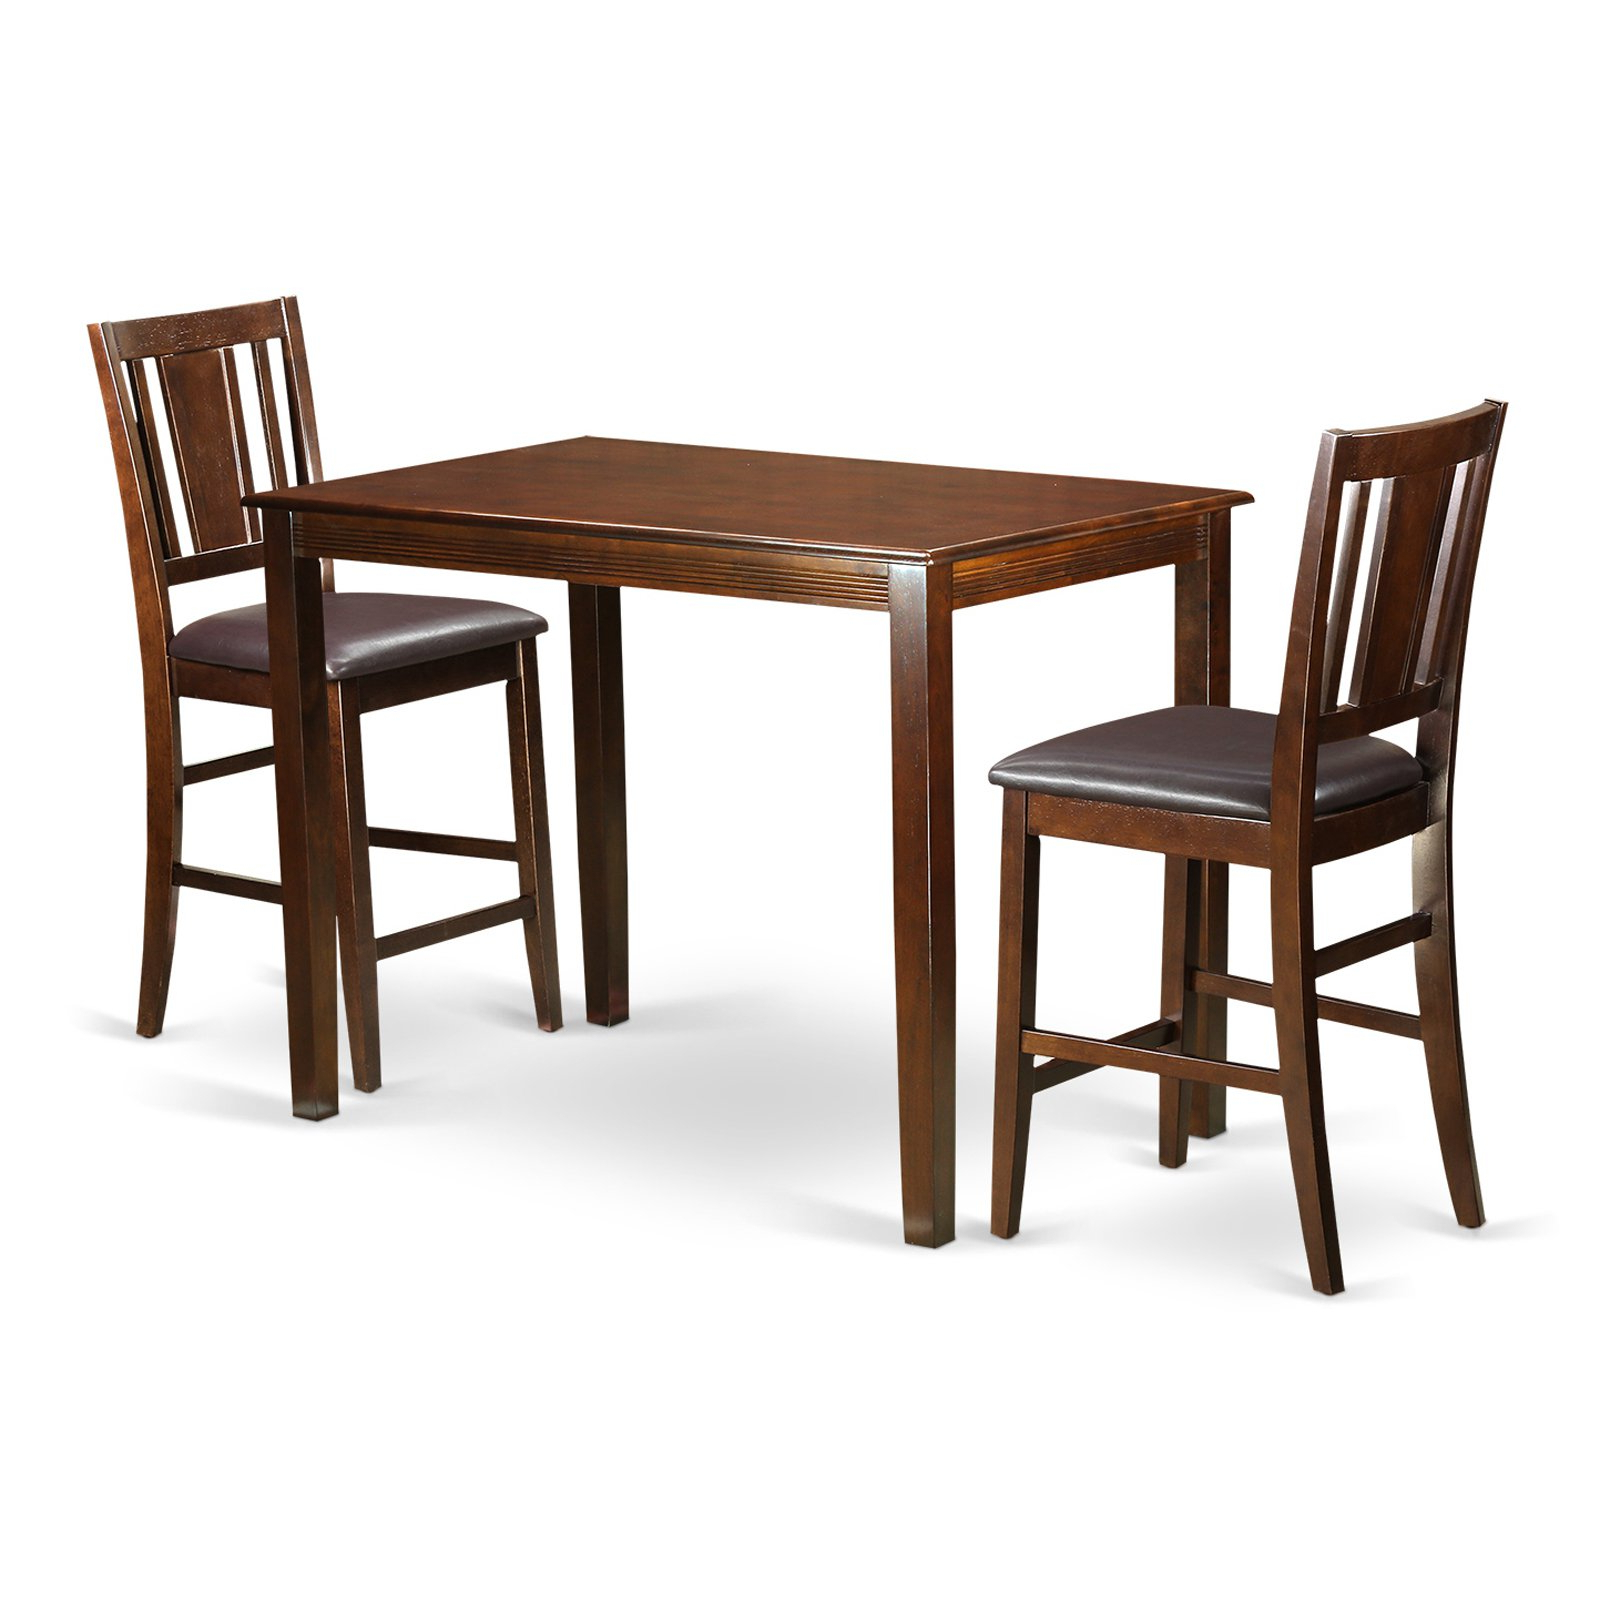 Fashionable Penelope 3 Piece Counter Height Wood Dining Sets Intended For East West Furniture Yarmouth 3 Piece Scotch Art Dining Table Set In (Gallery 15 of 20)